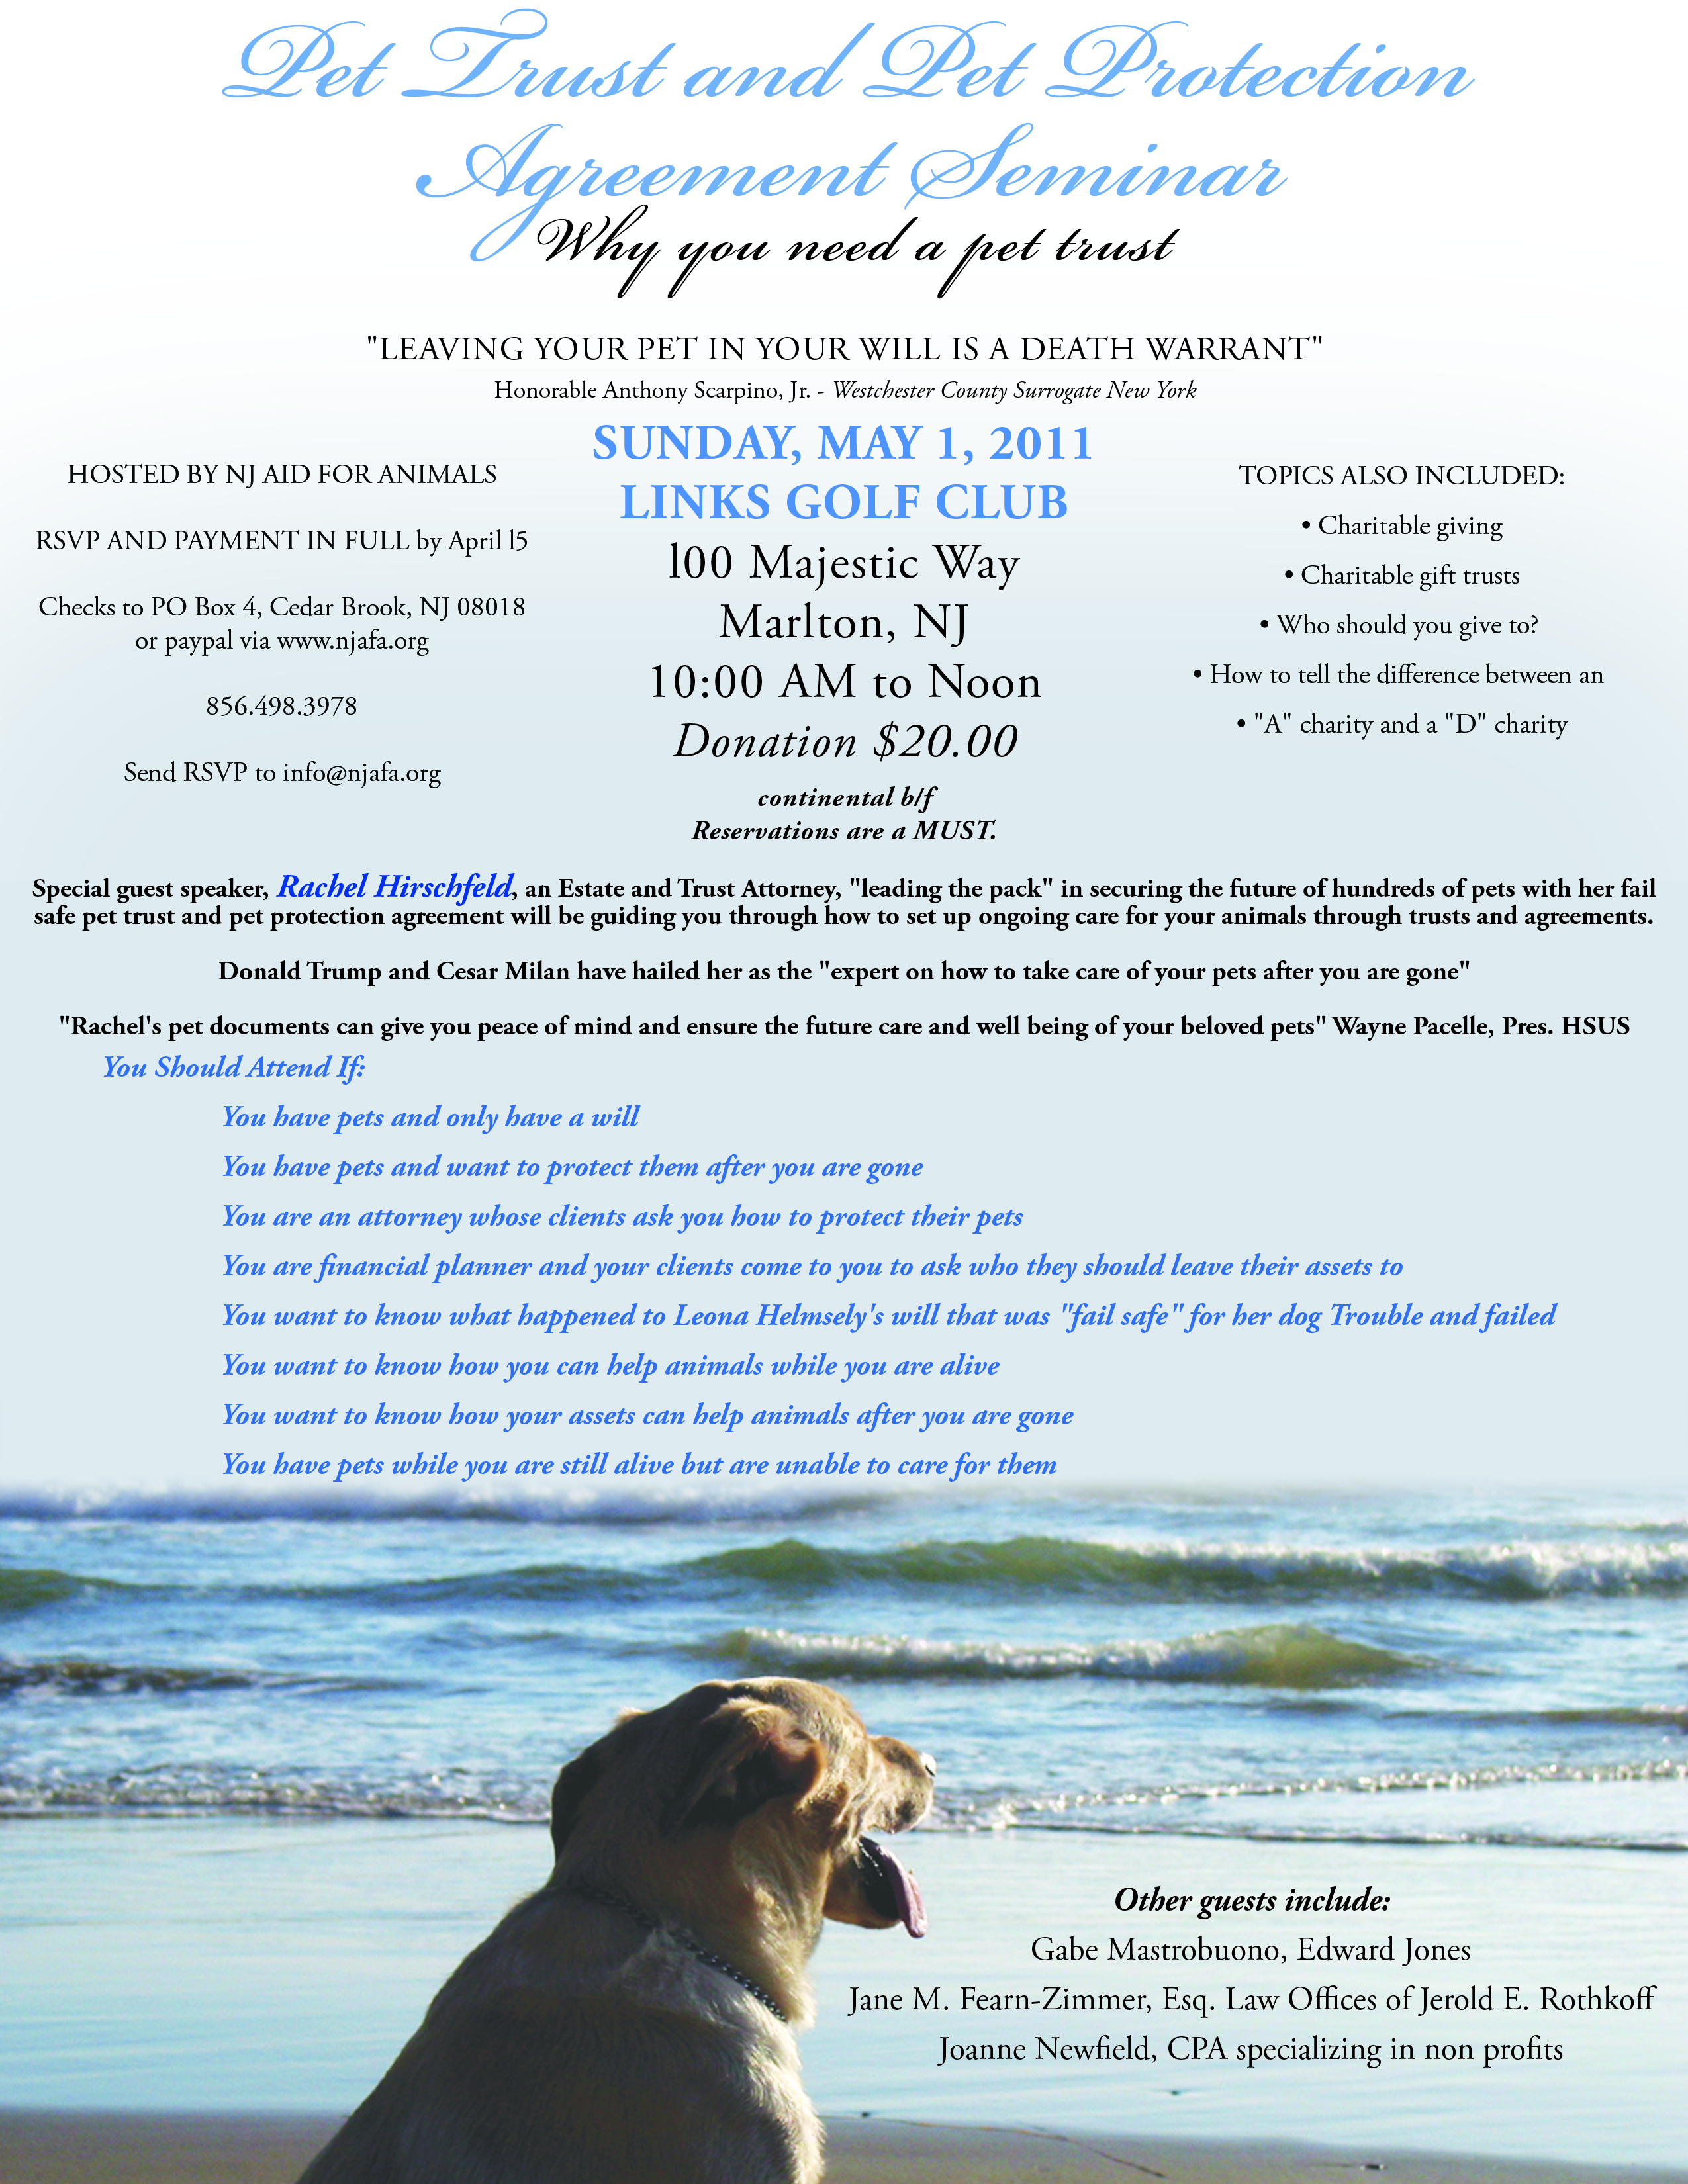 5111 Pet Trust Protection Agreement Seminar Nj Aid For